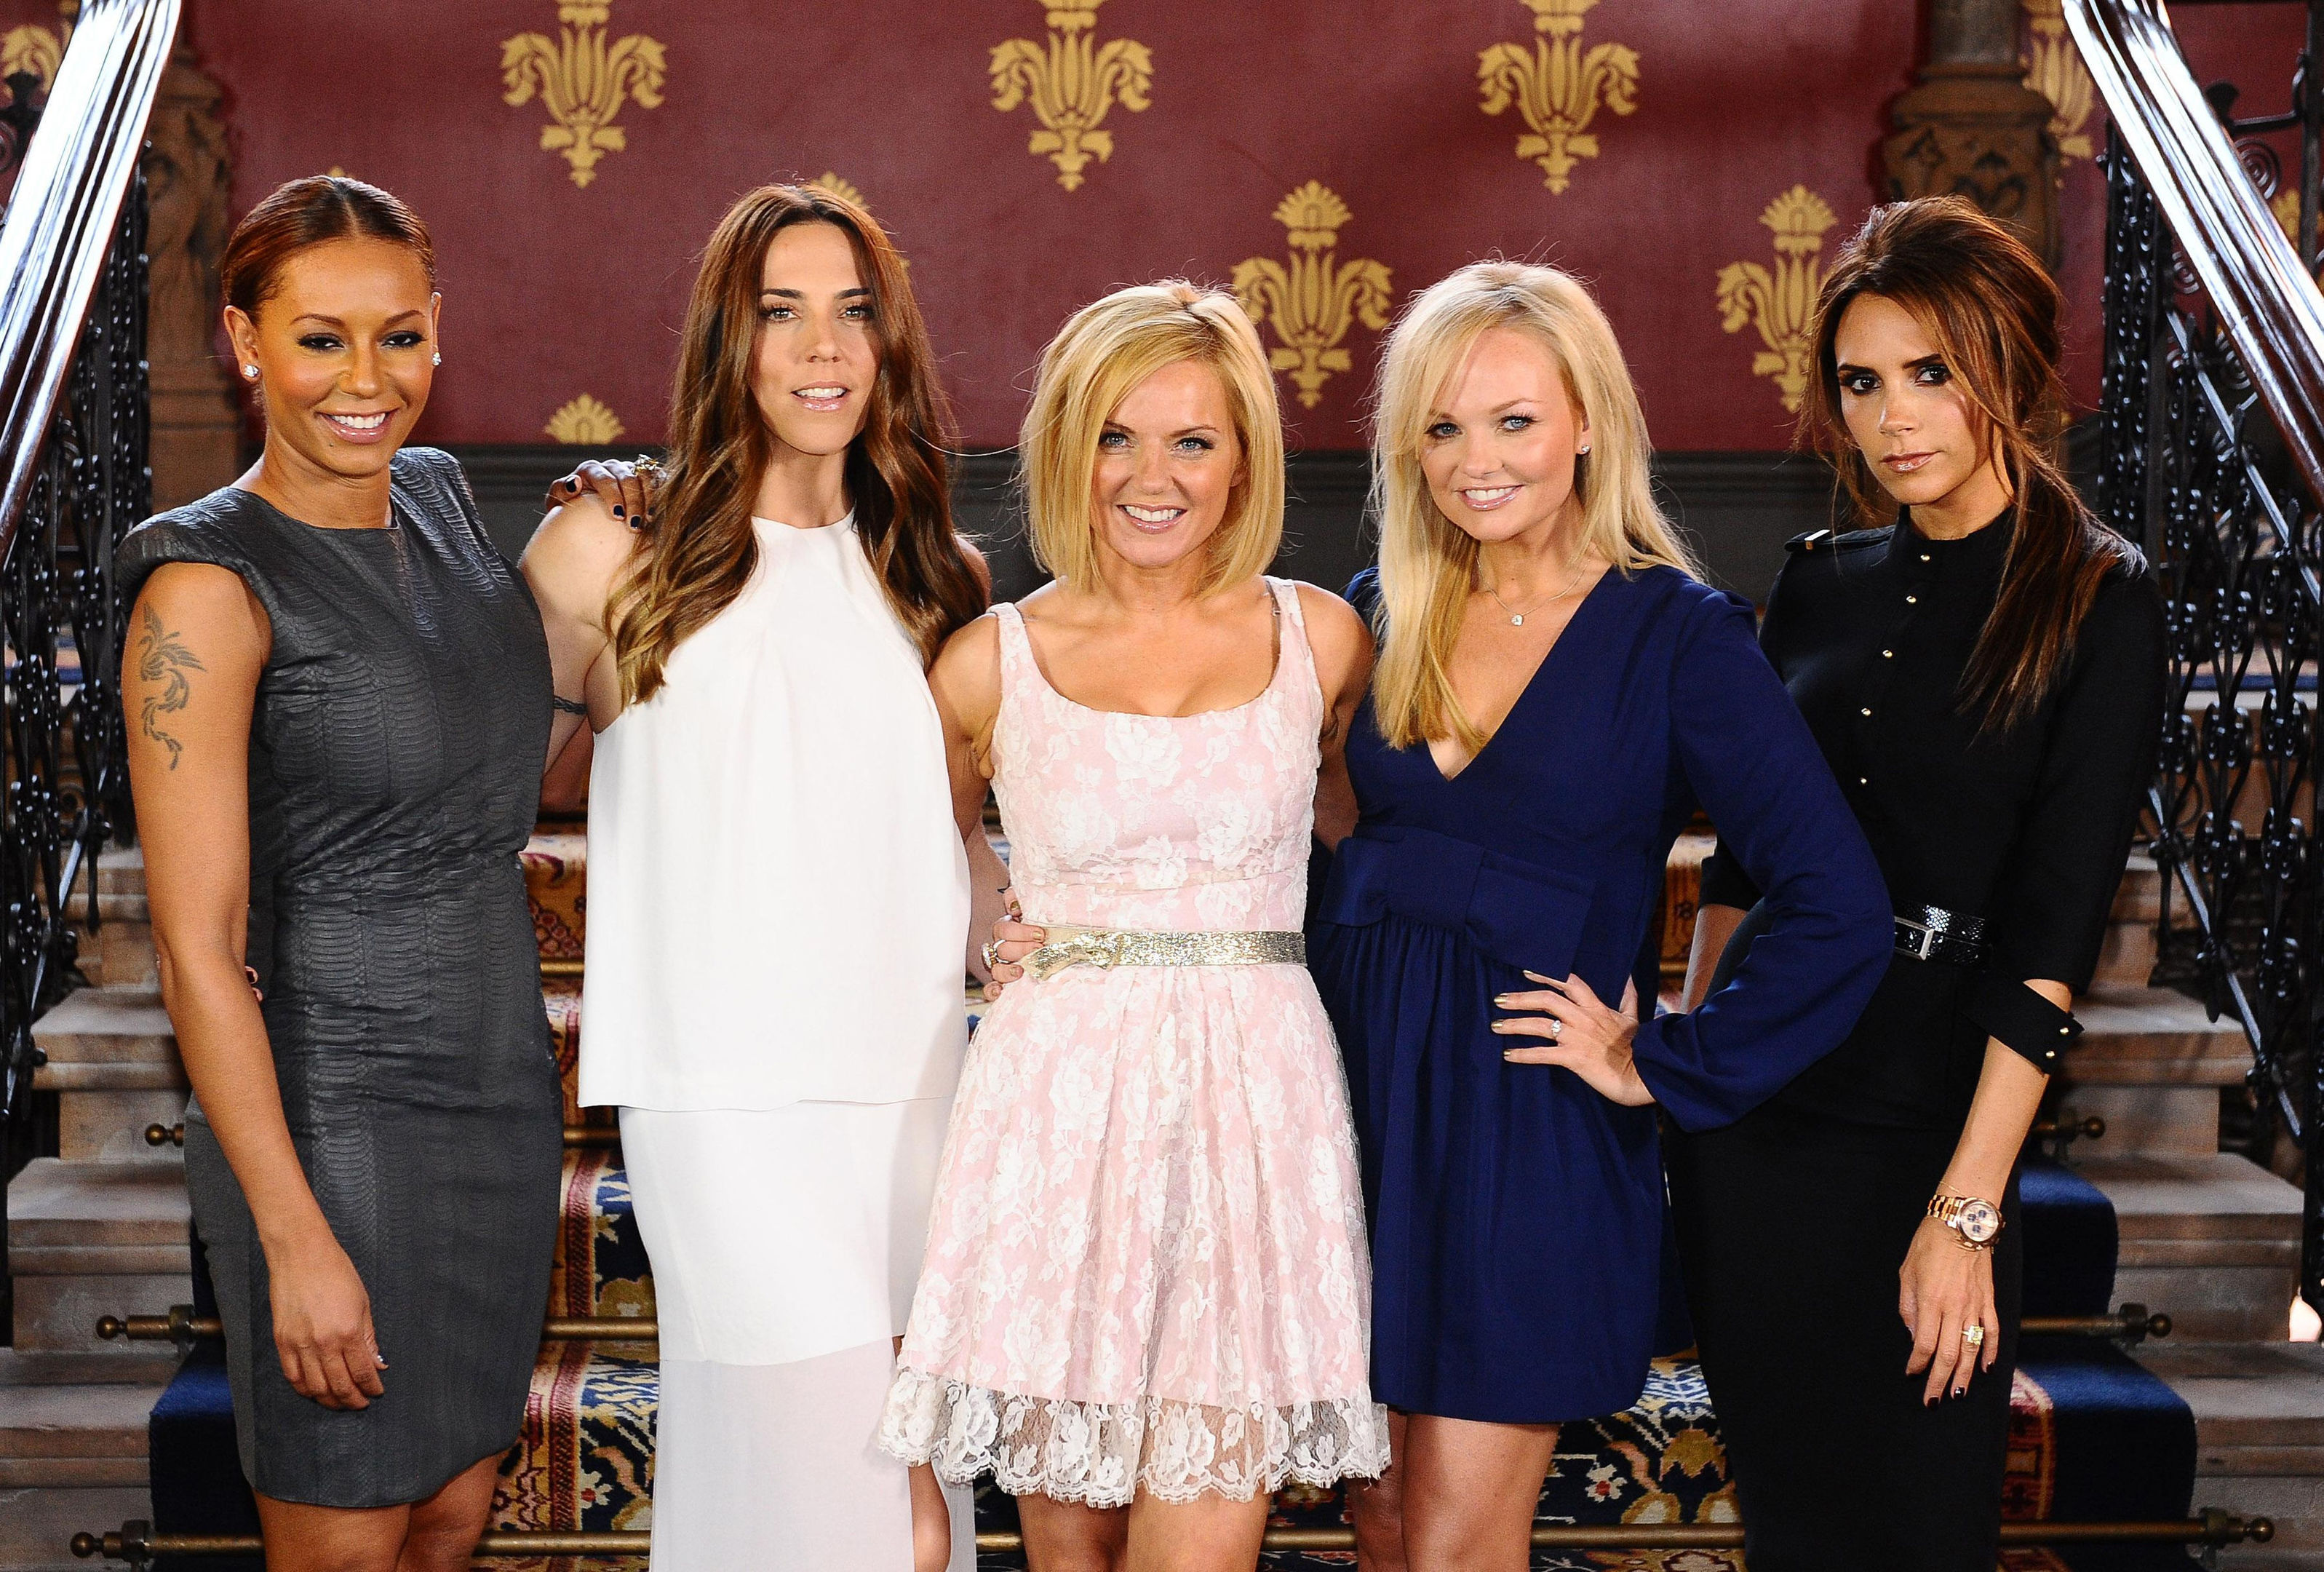 The Spice Girls got together in 2012 for a one-off appearance at the London Olympics